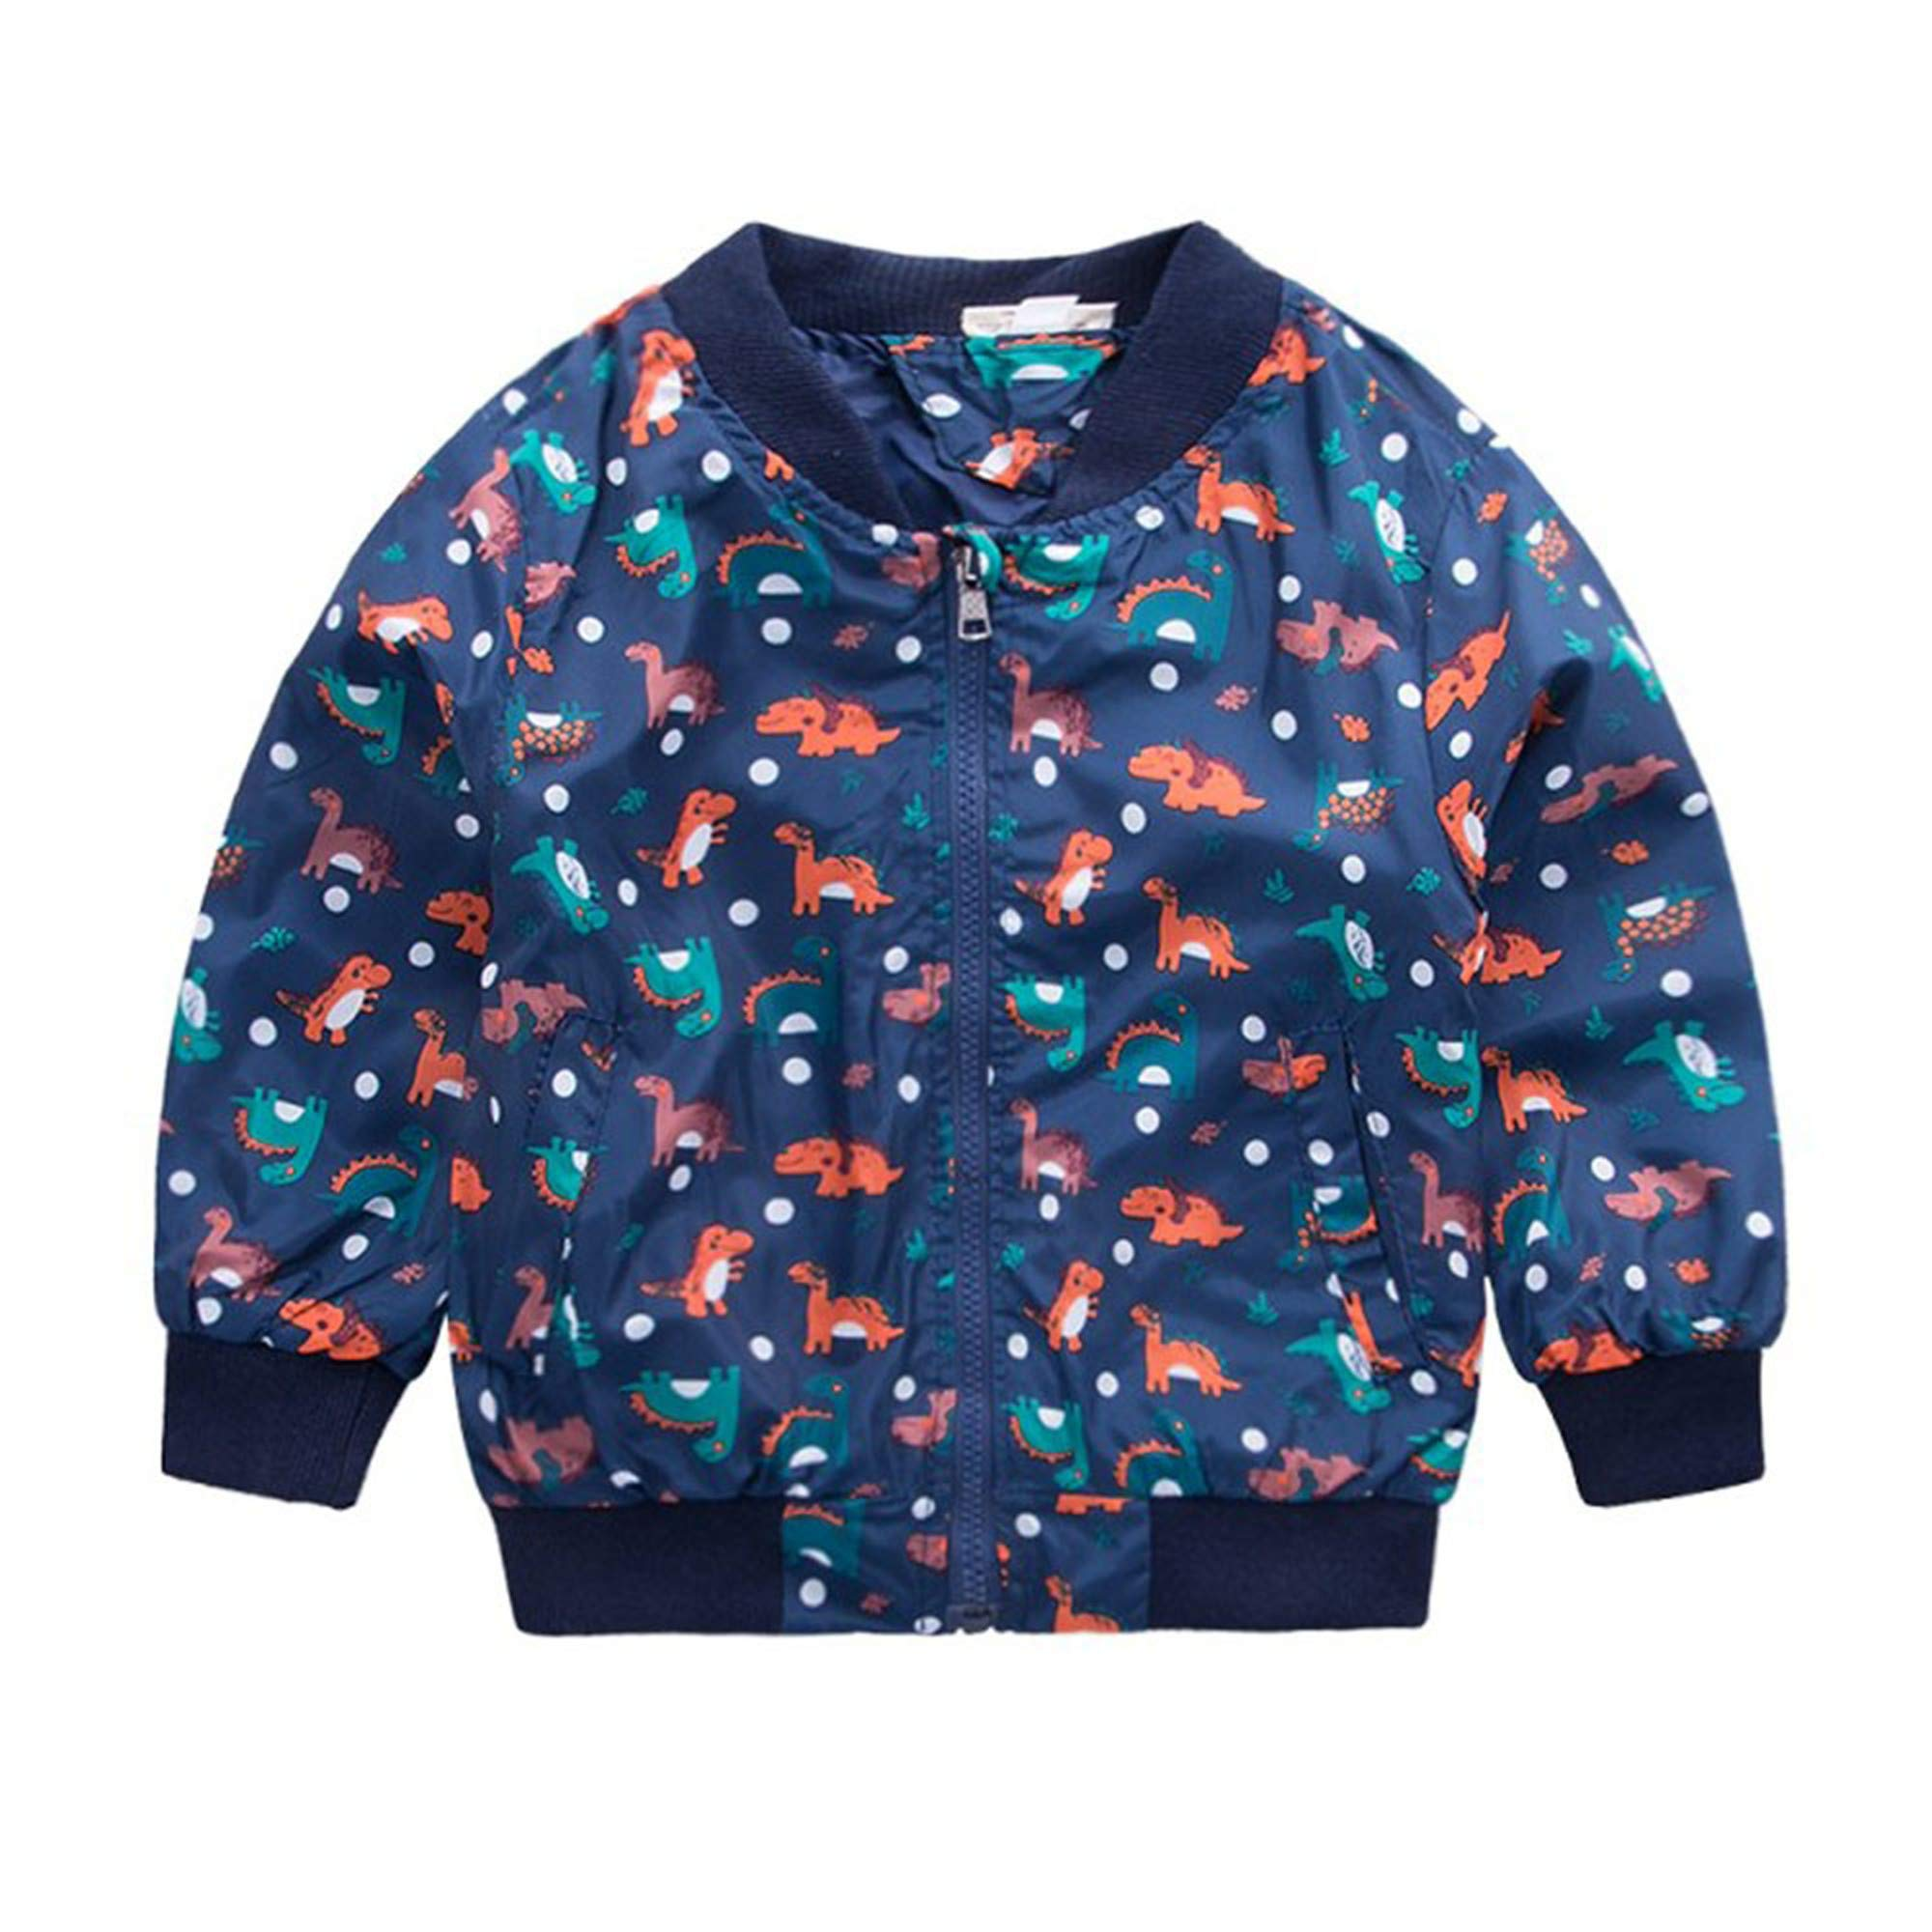 SMALLE ◕‿◕ Baby Boys Dinosaur Print Hooded Jacket Coat Winter Warm Thick Cute Tops Cool Outwear